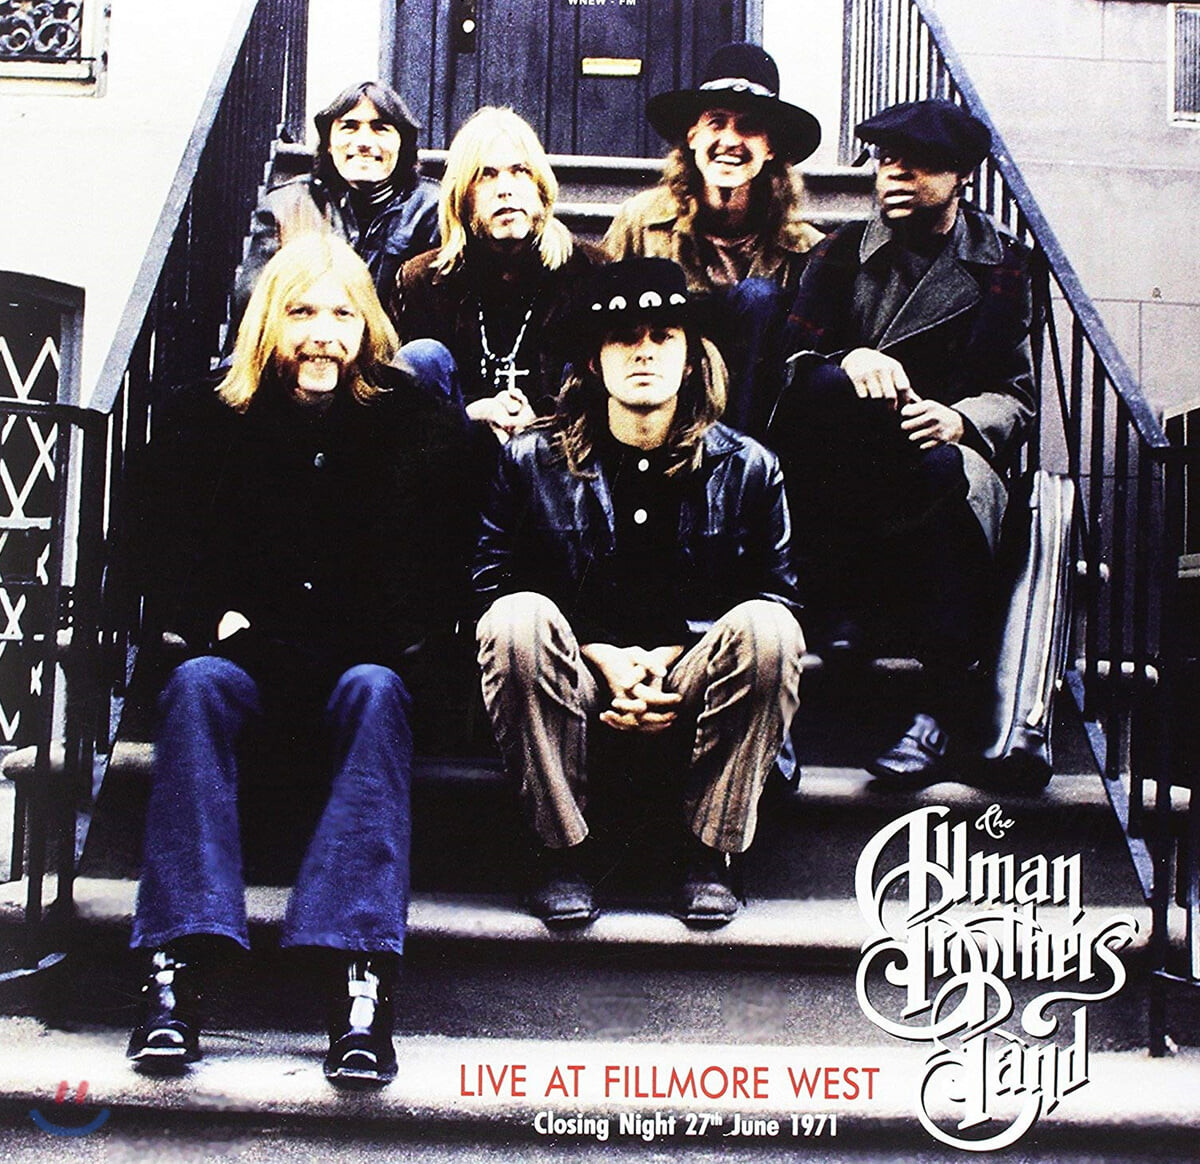 The Allman Brothers Band (올맨 브라더스 밴드) - Live At Fillmore West Closing Night 27th June 1971 [2LP]